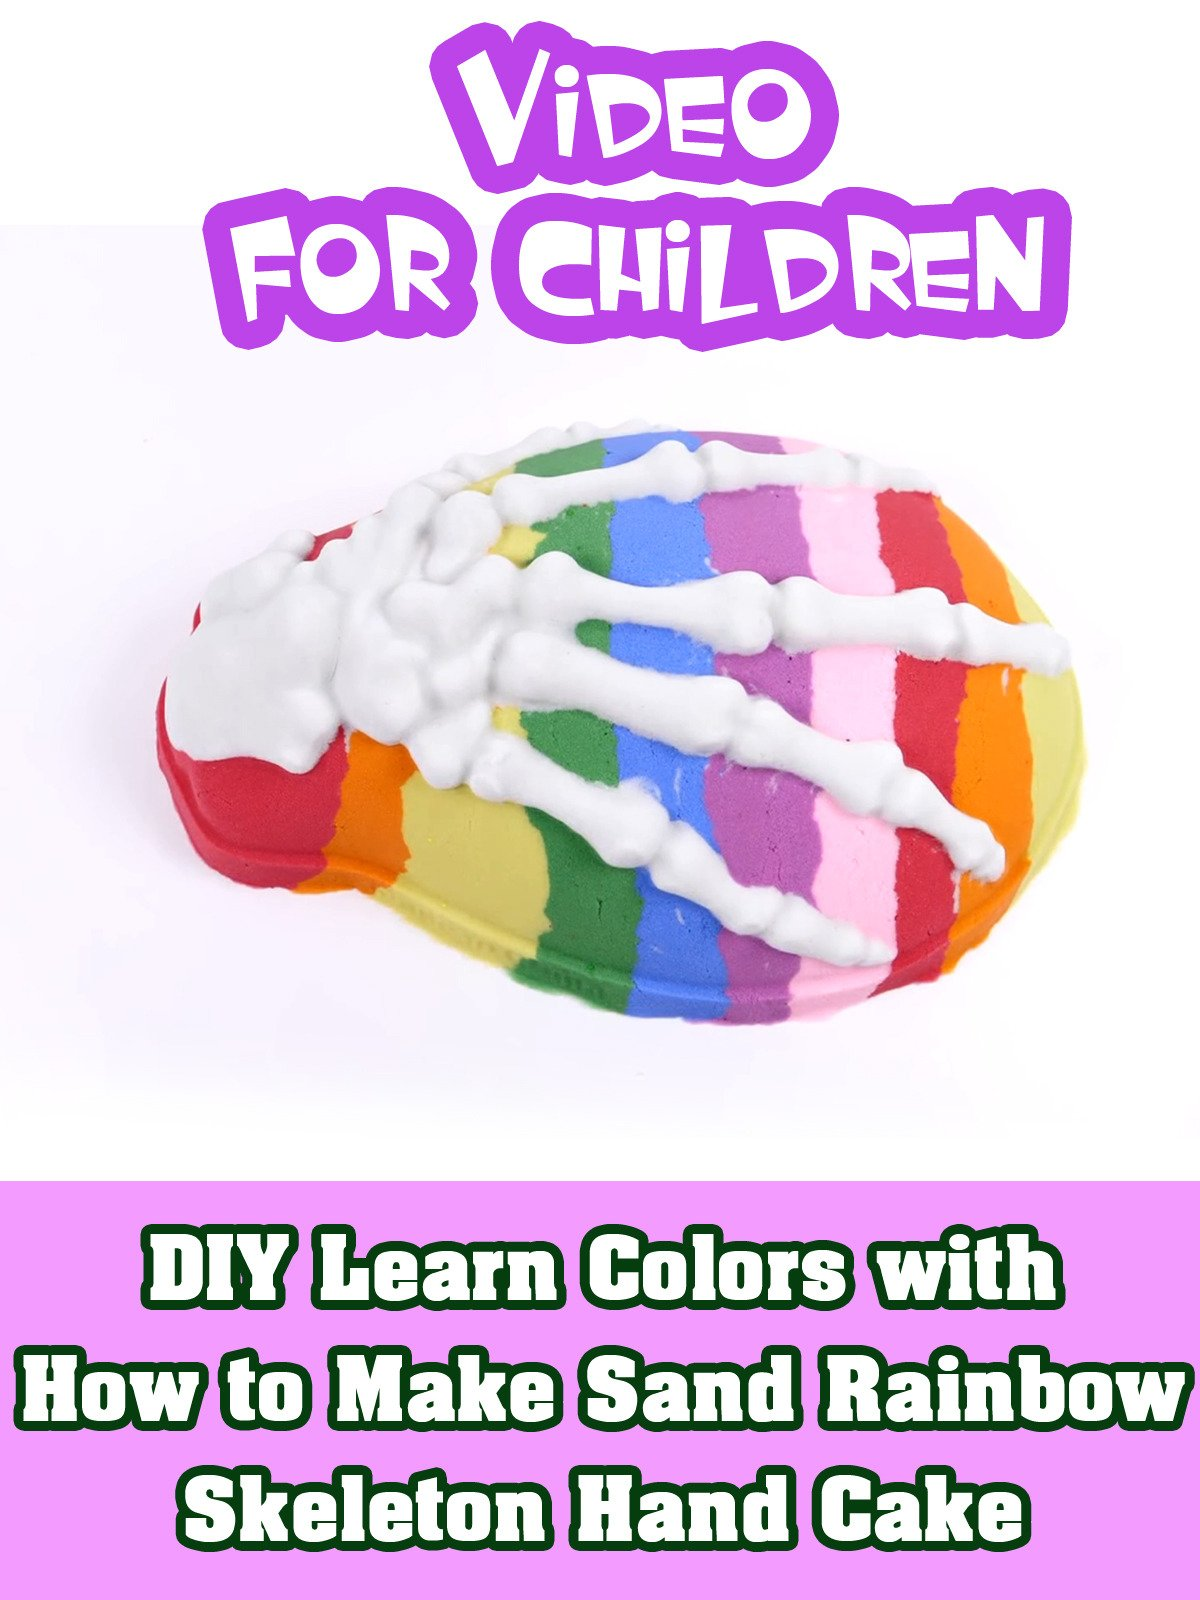 DIY Learn Colors with How to Make Sand Rainbow Skeleton Hand Cake